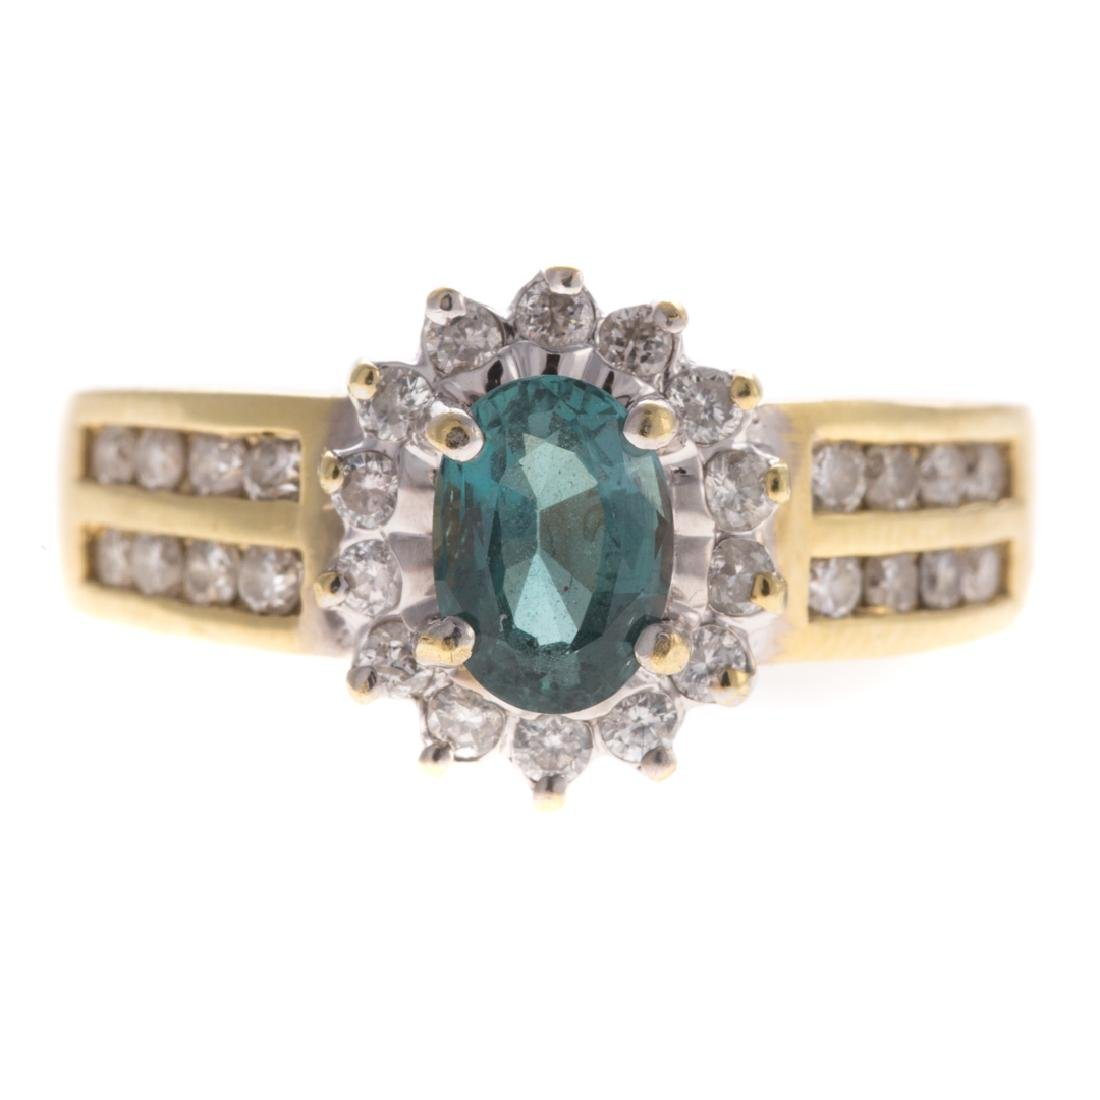 A Lady's Alexandrite & Diamond Ring in 18K Gold